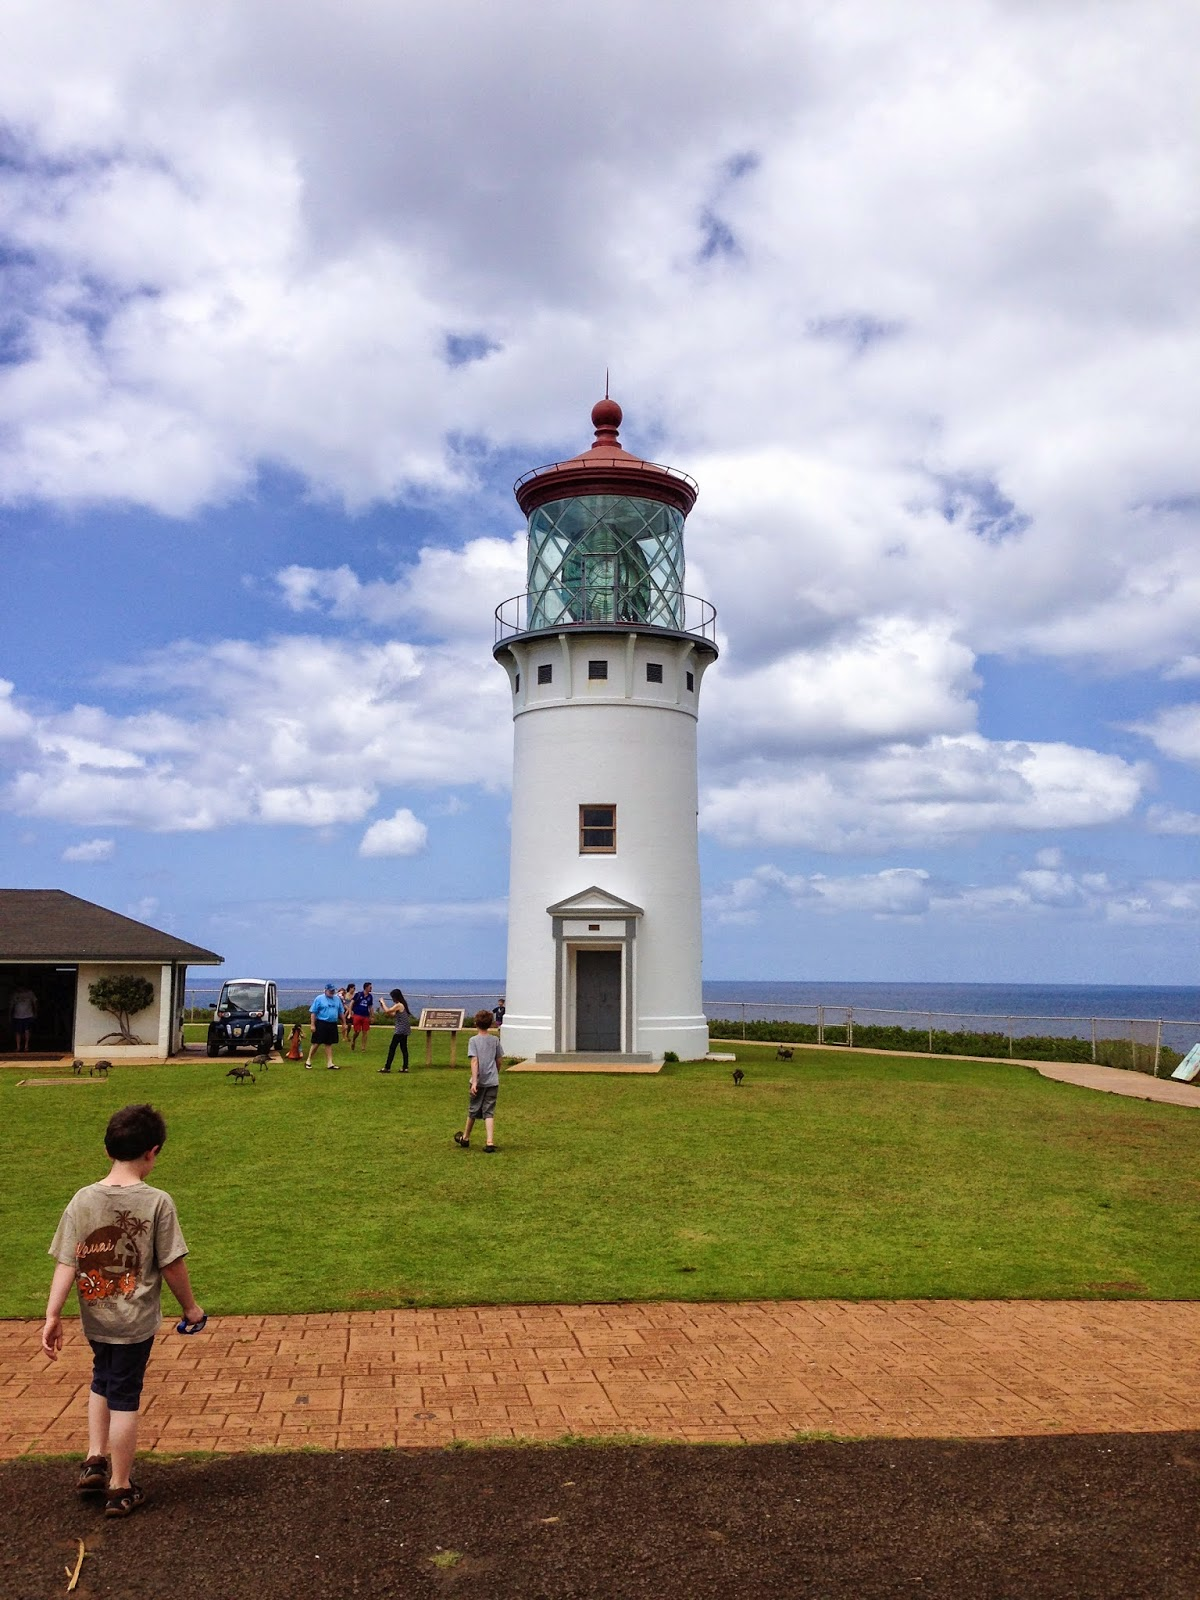 Kilauea Light House in Kilauea, HI